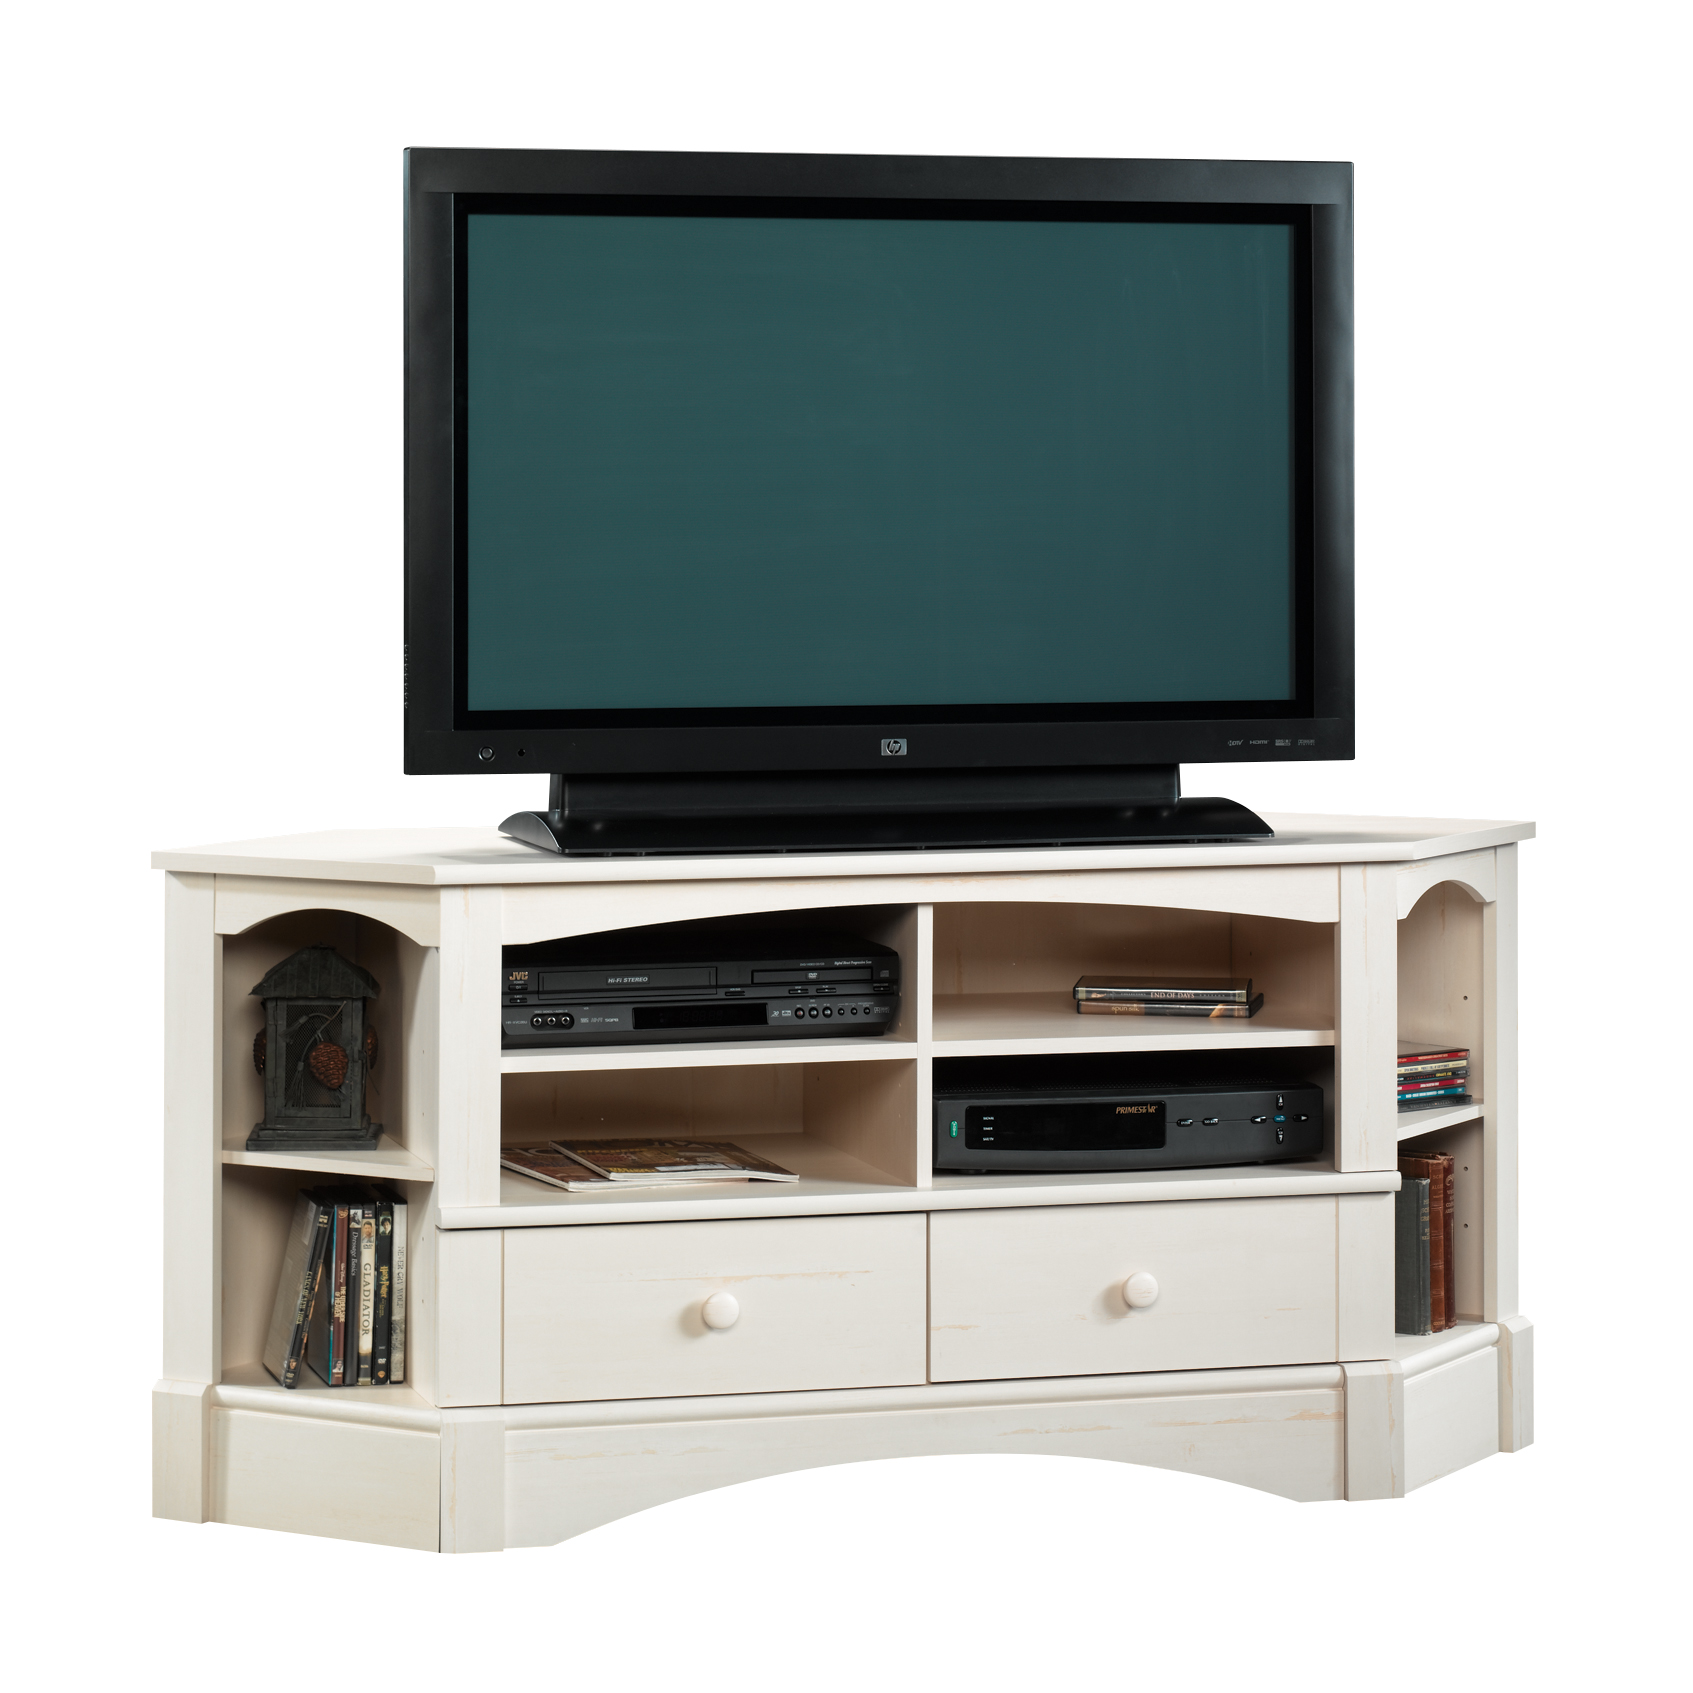 "Sauder Harbor View Corner Entertainment Credenza for TVs up to 60"", Antiqued White Finish"